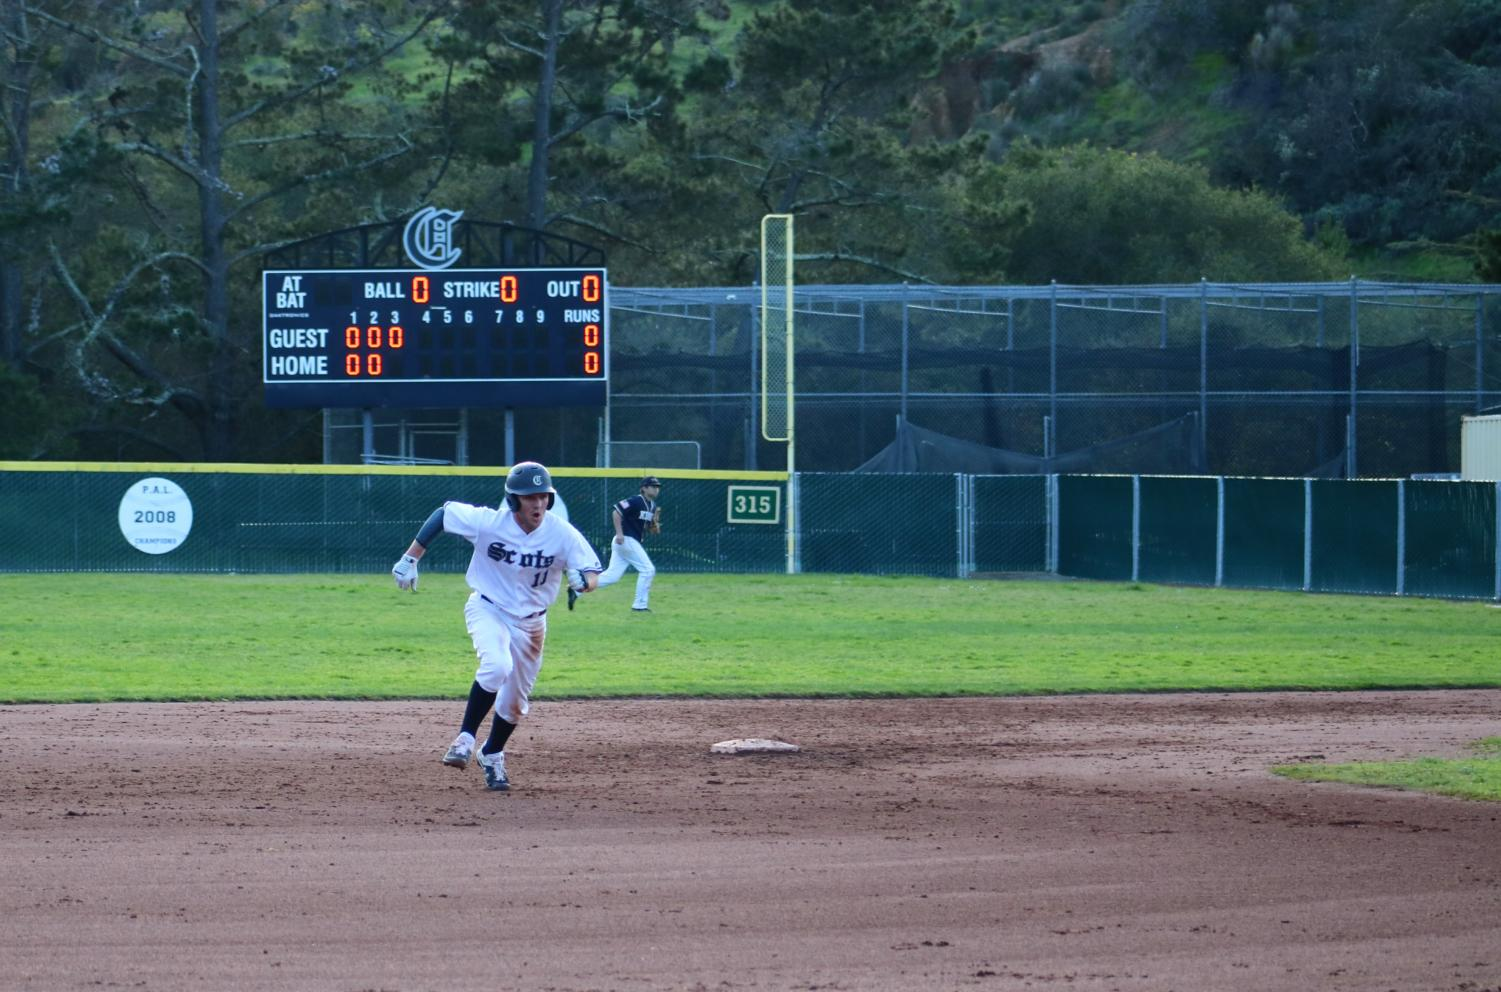 Jake Robinson, a senior and right fielder, runs to third base.